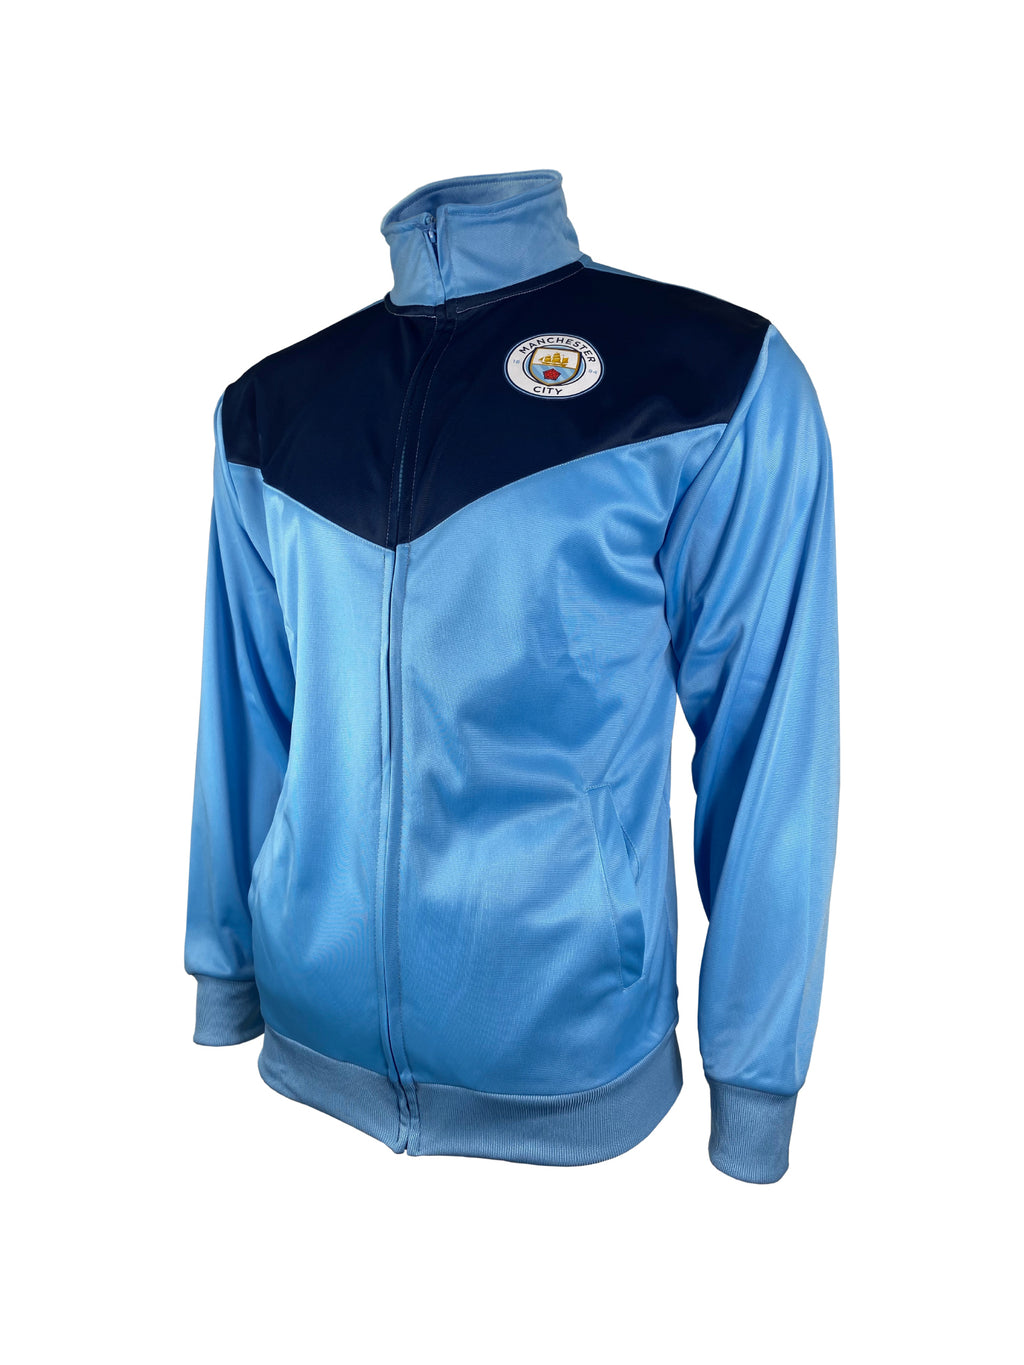 Manchester City Football Club Men's Full Zip Track Jacket